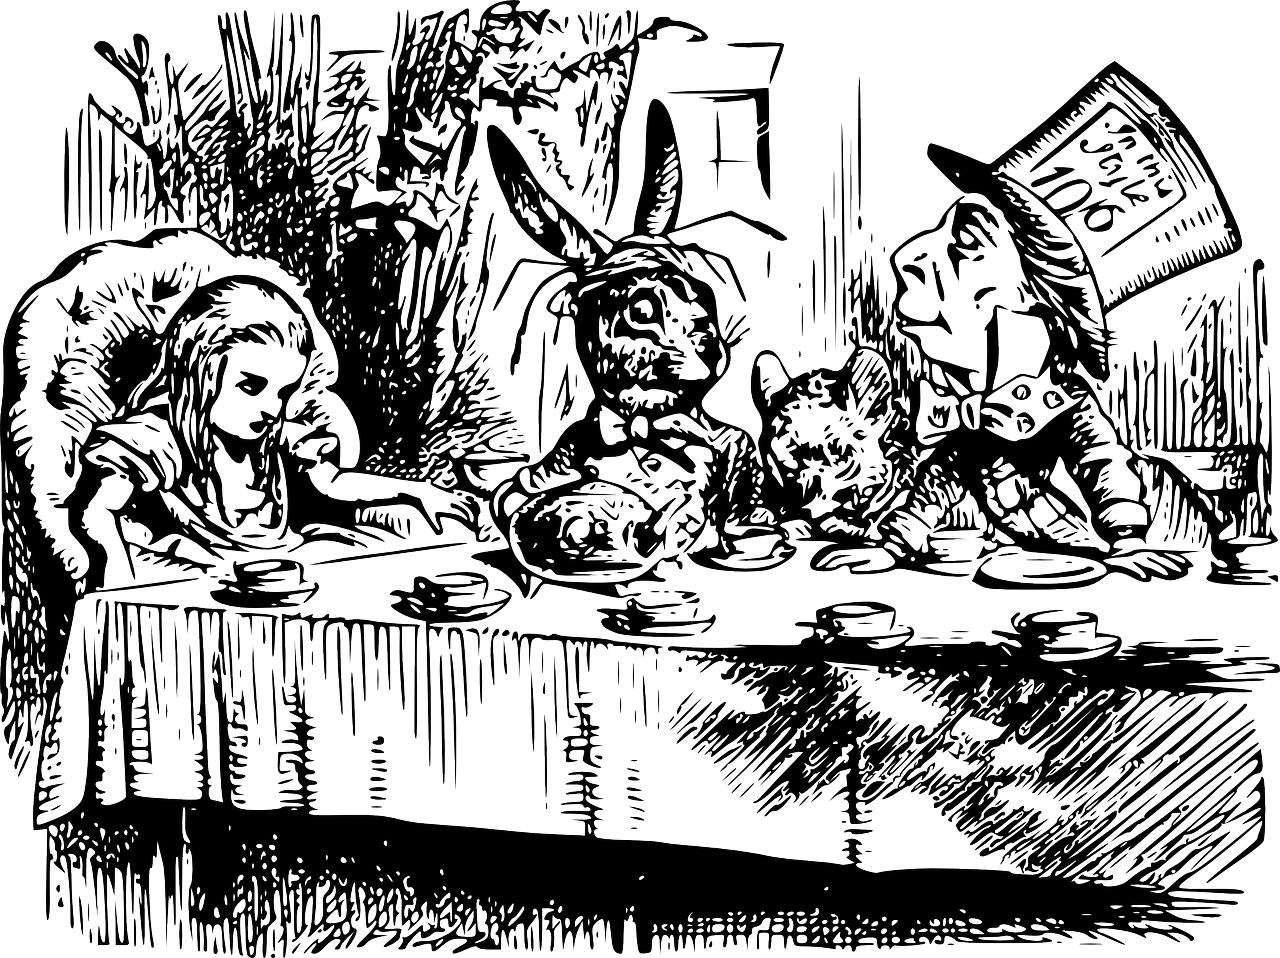 Mad_Hatter_tea_party